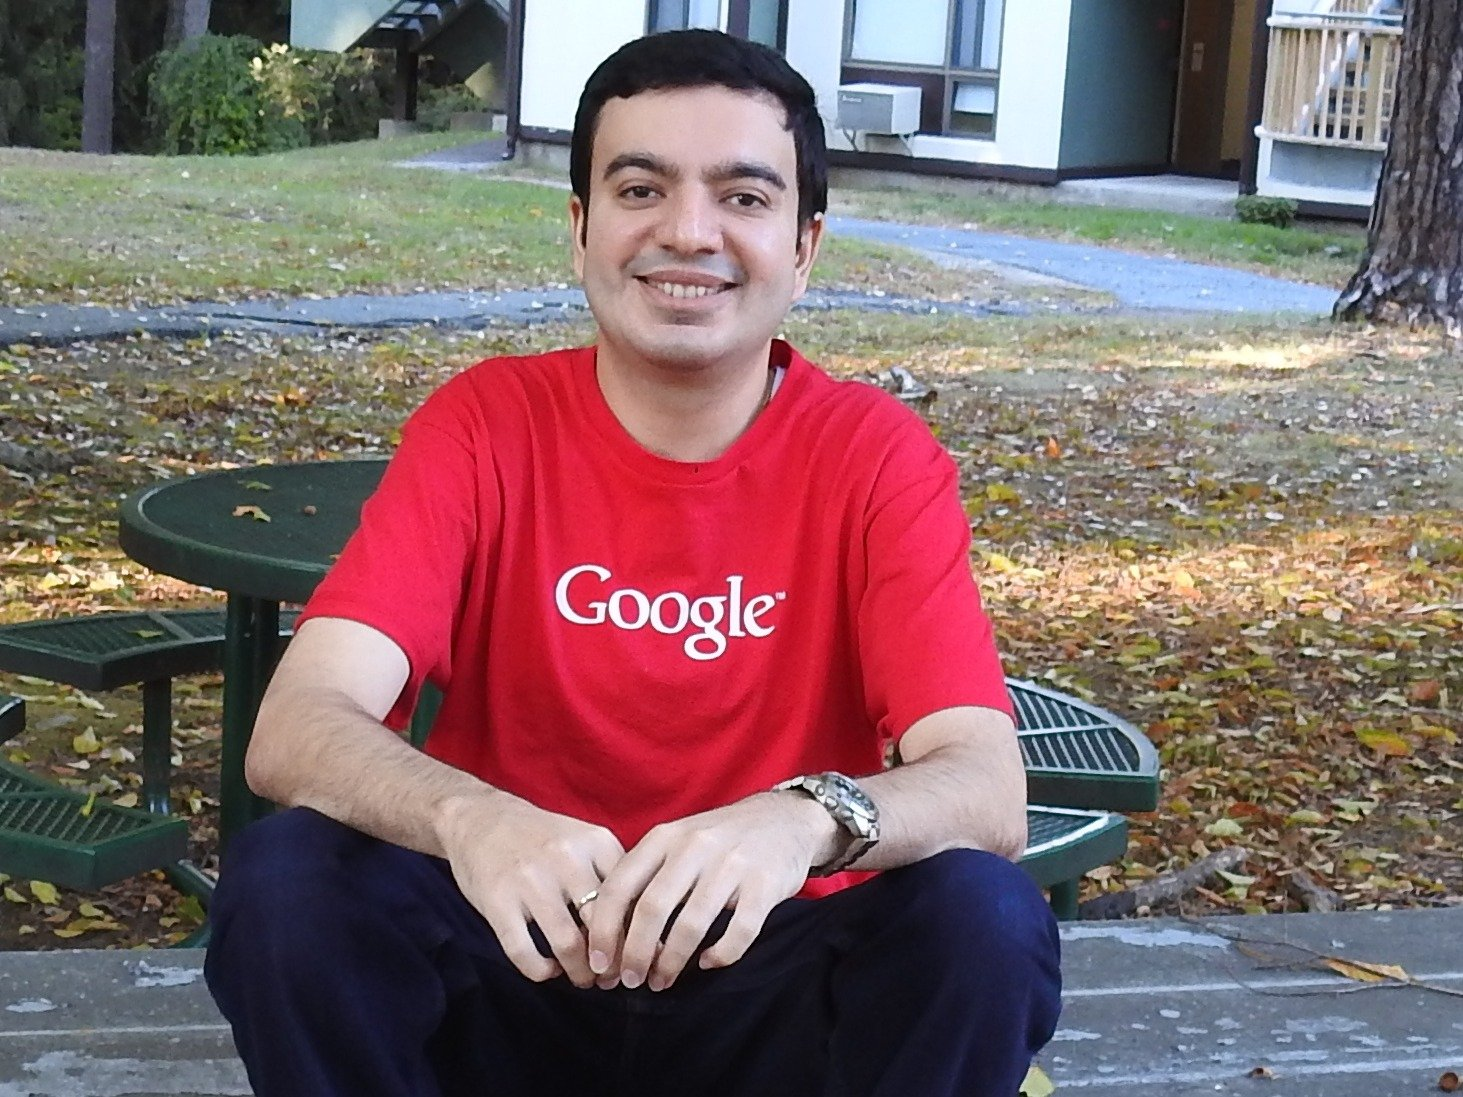 Sanmay Ved who bought Google.com donates Google reward to charity